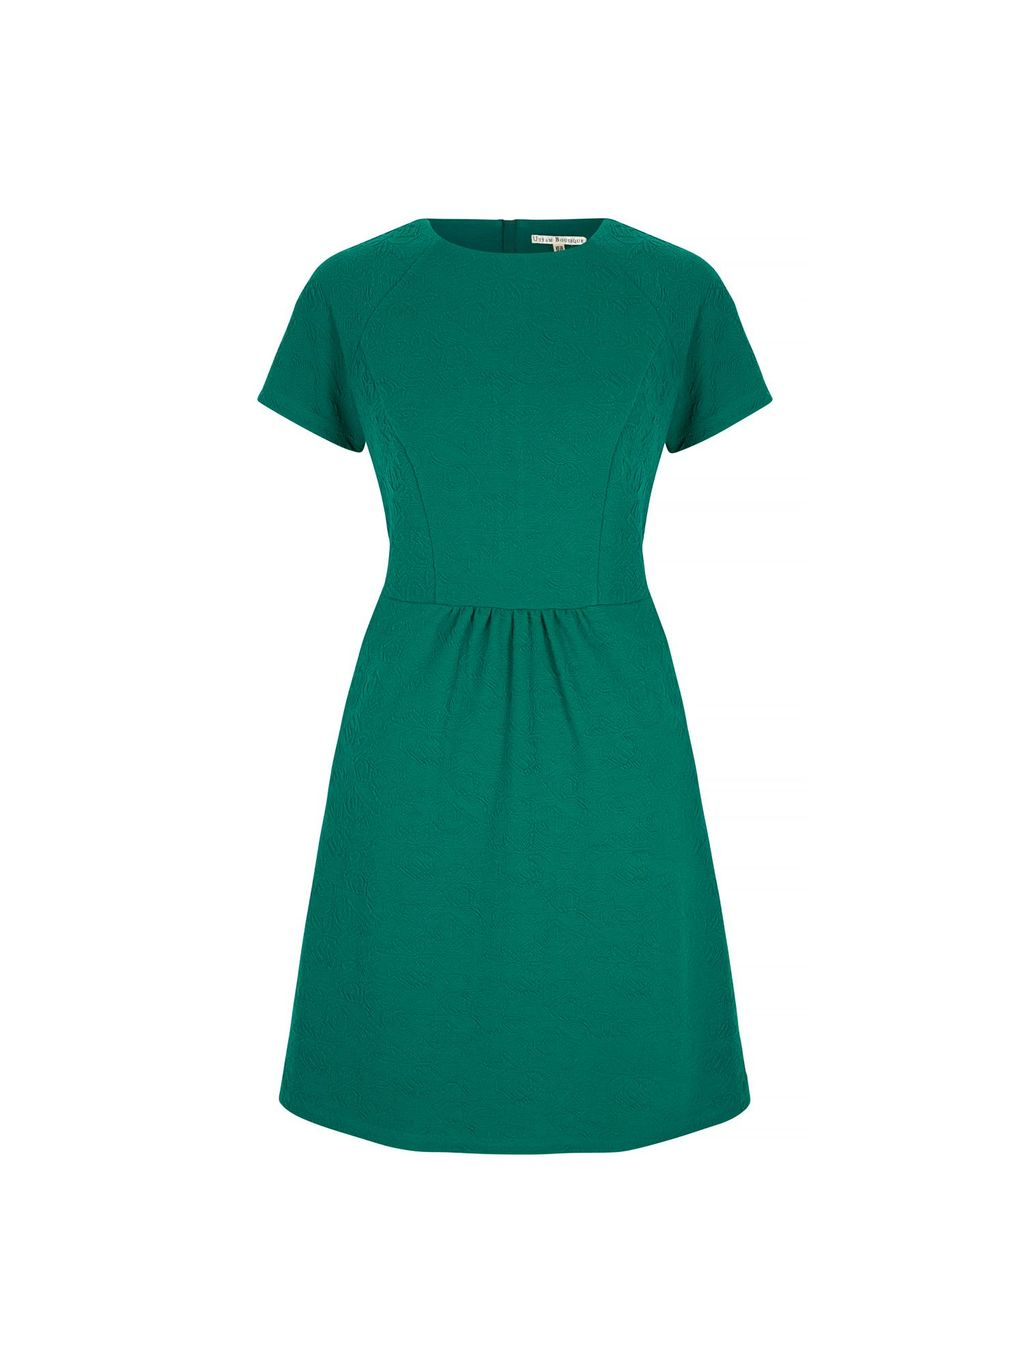 Textured Ponte Day Dress, Green - pattern: plain; predominant colour: emerald green; occasions: evening; length: just above the knee; fit: fitted at waist & bust; style: fit & flare; fibres: polyester/polyamide - stretch; neckline: crew; sleeve length: short sleeve; sleeve style: standard; pattern type: fabric; texture group: jersey - stretchy/drapey; season: s/s 2016; wardrobe: event